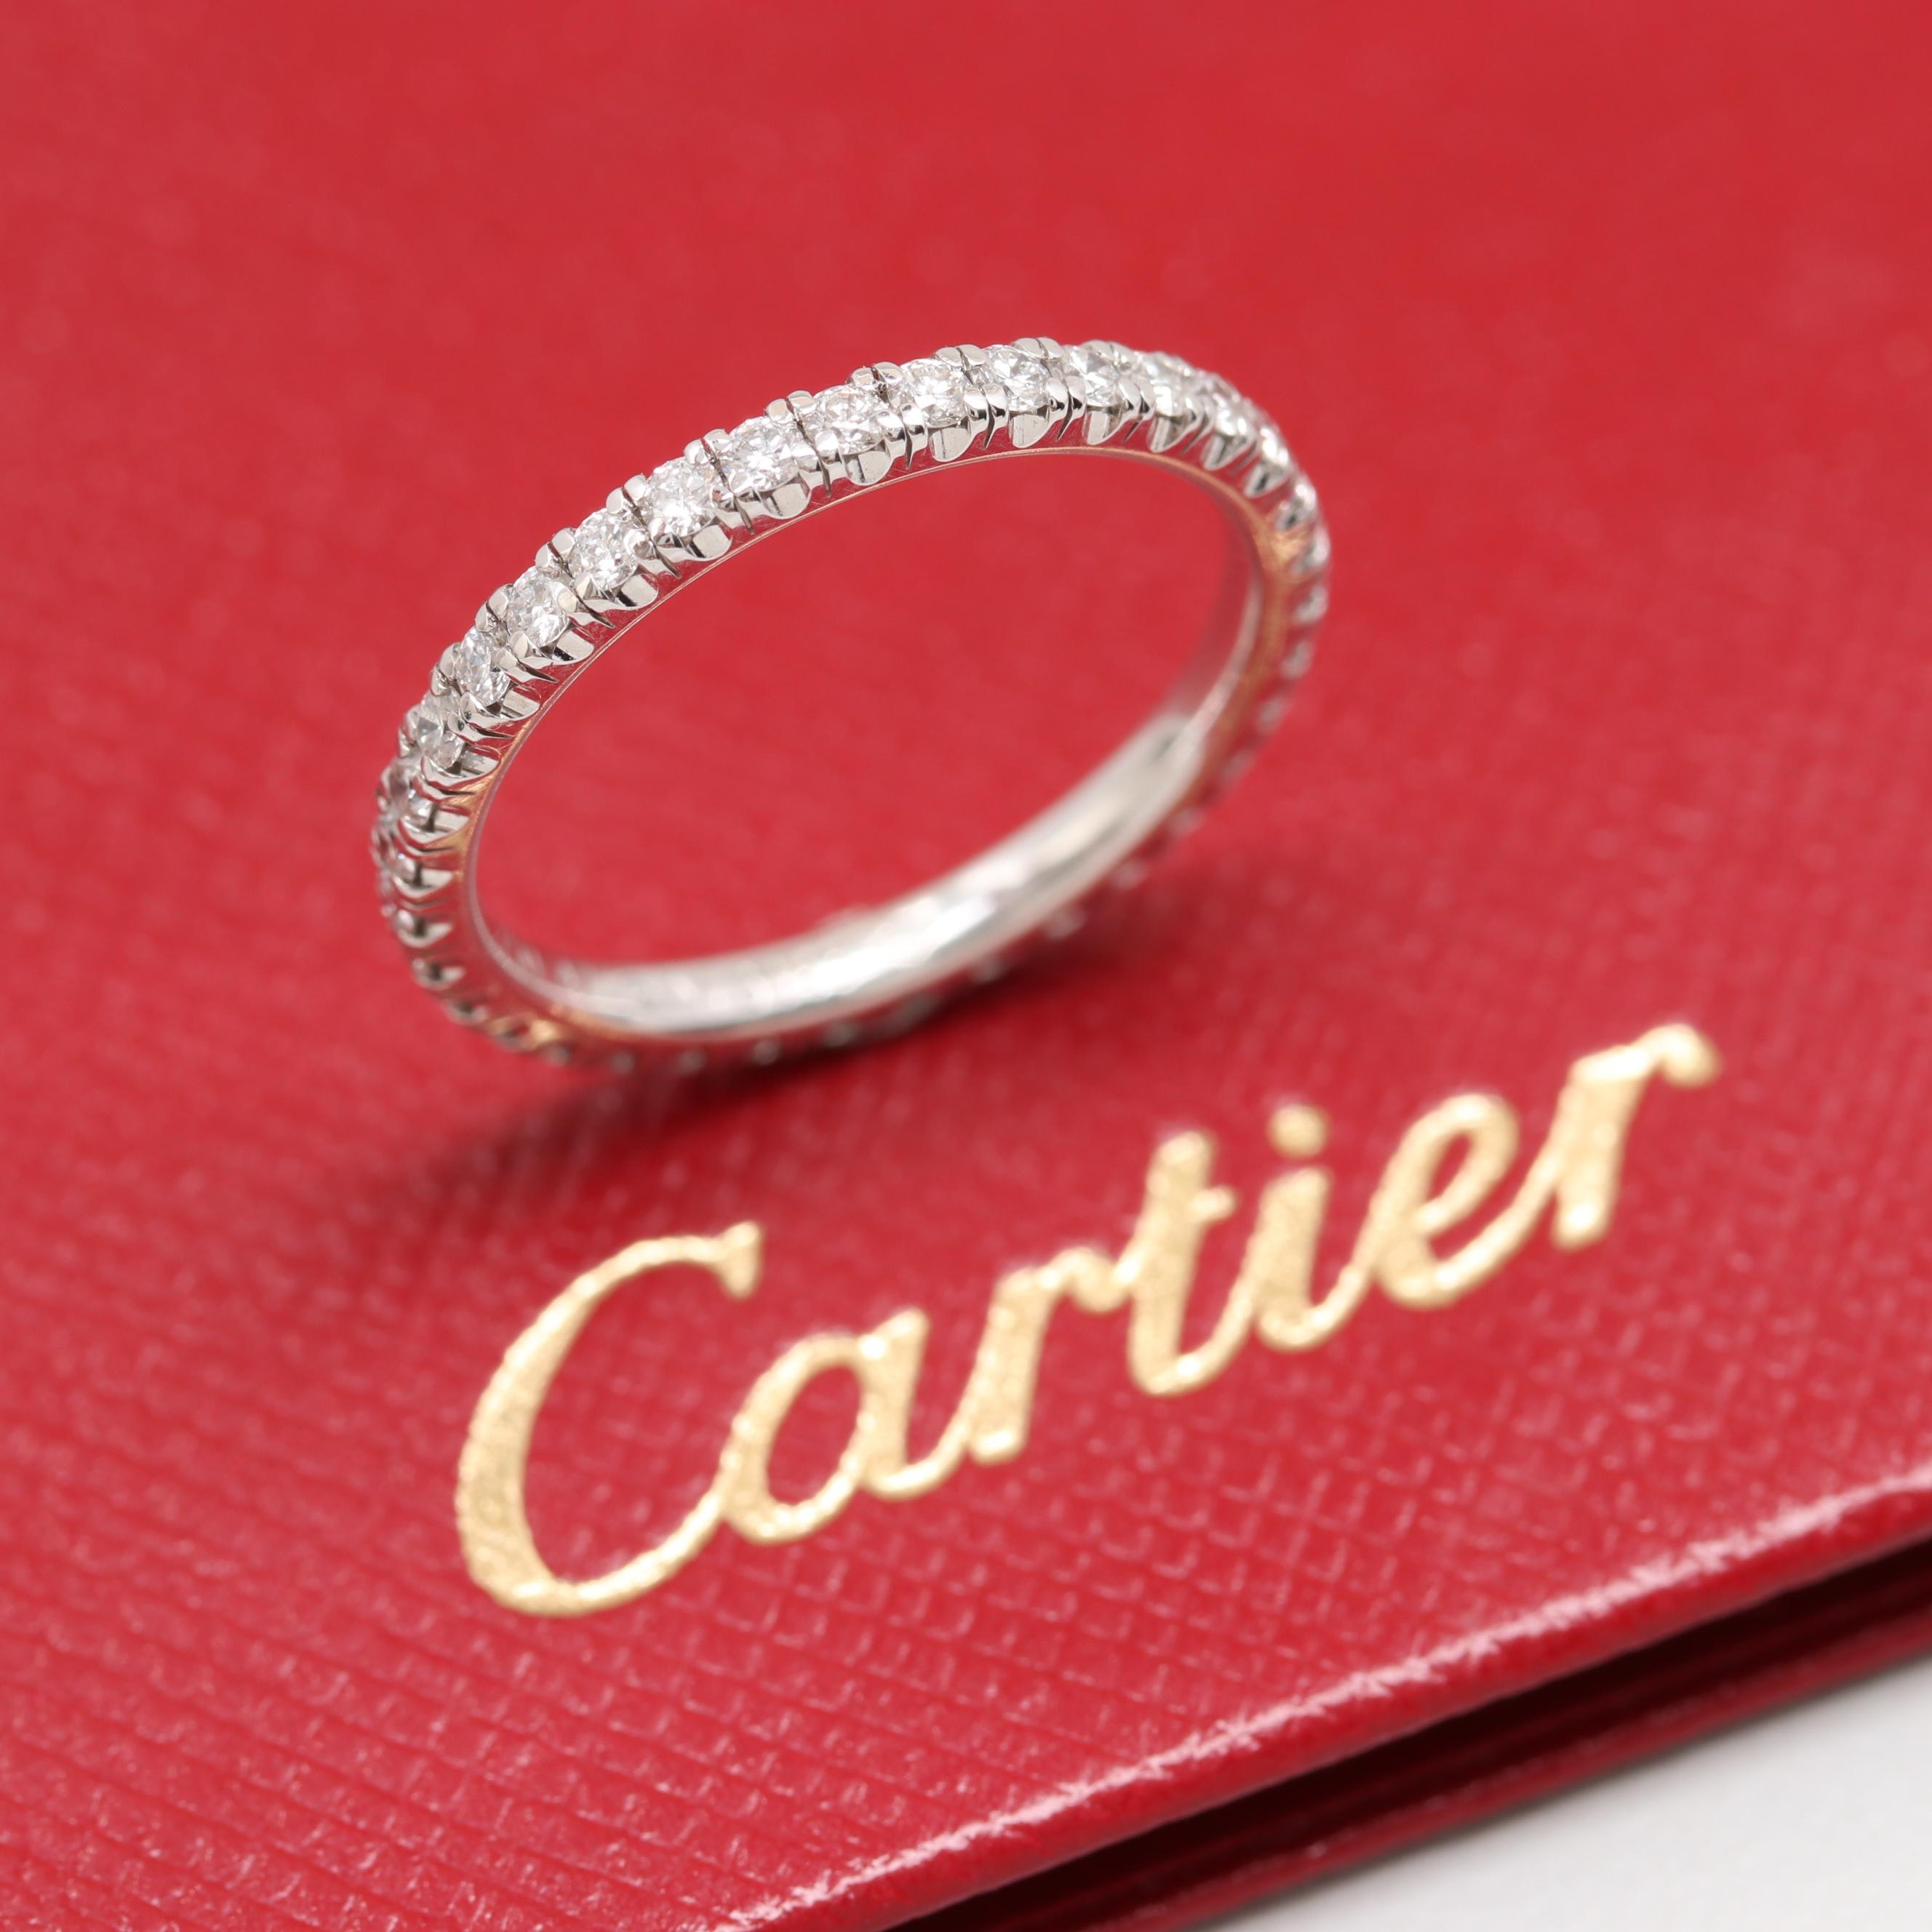 Cartier 18K White Gold Diamond Eternity Ring with Cartier Certificate